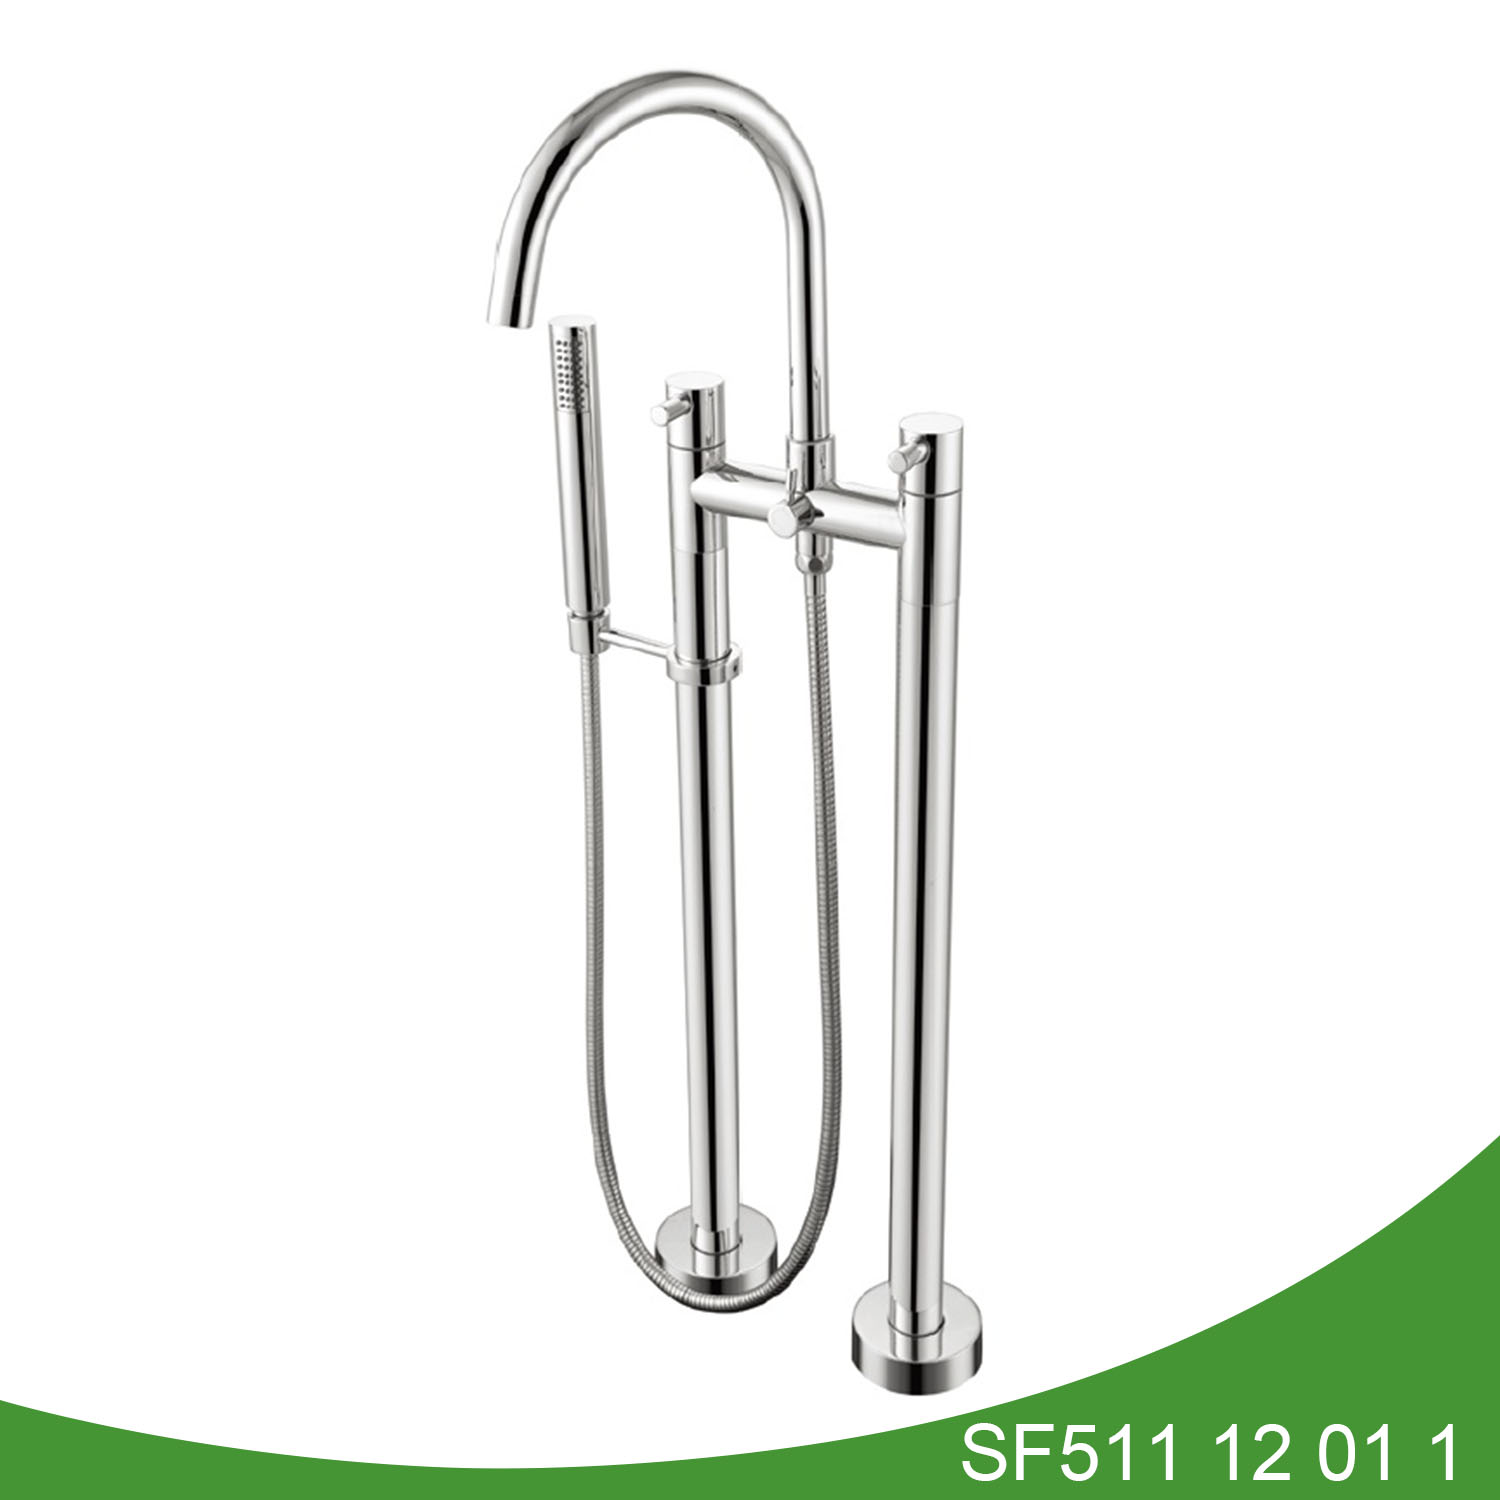 Two feet freestanding batub shower SF511 12 01 1